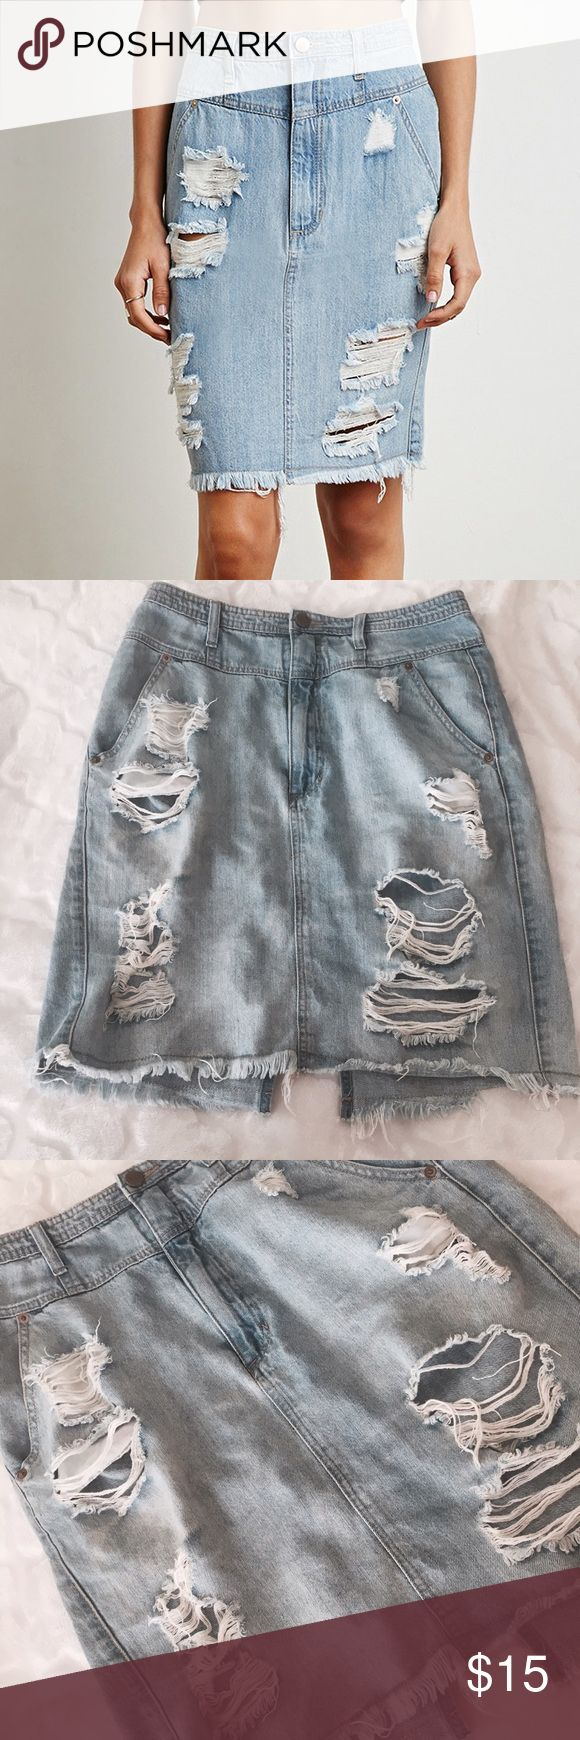 """Distressed Jean Skirt ✨ Distressed jean pencil skirt - Slit on back - High waisted - Size 30"""" waist ✨ Forever 21 Skirts"""